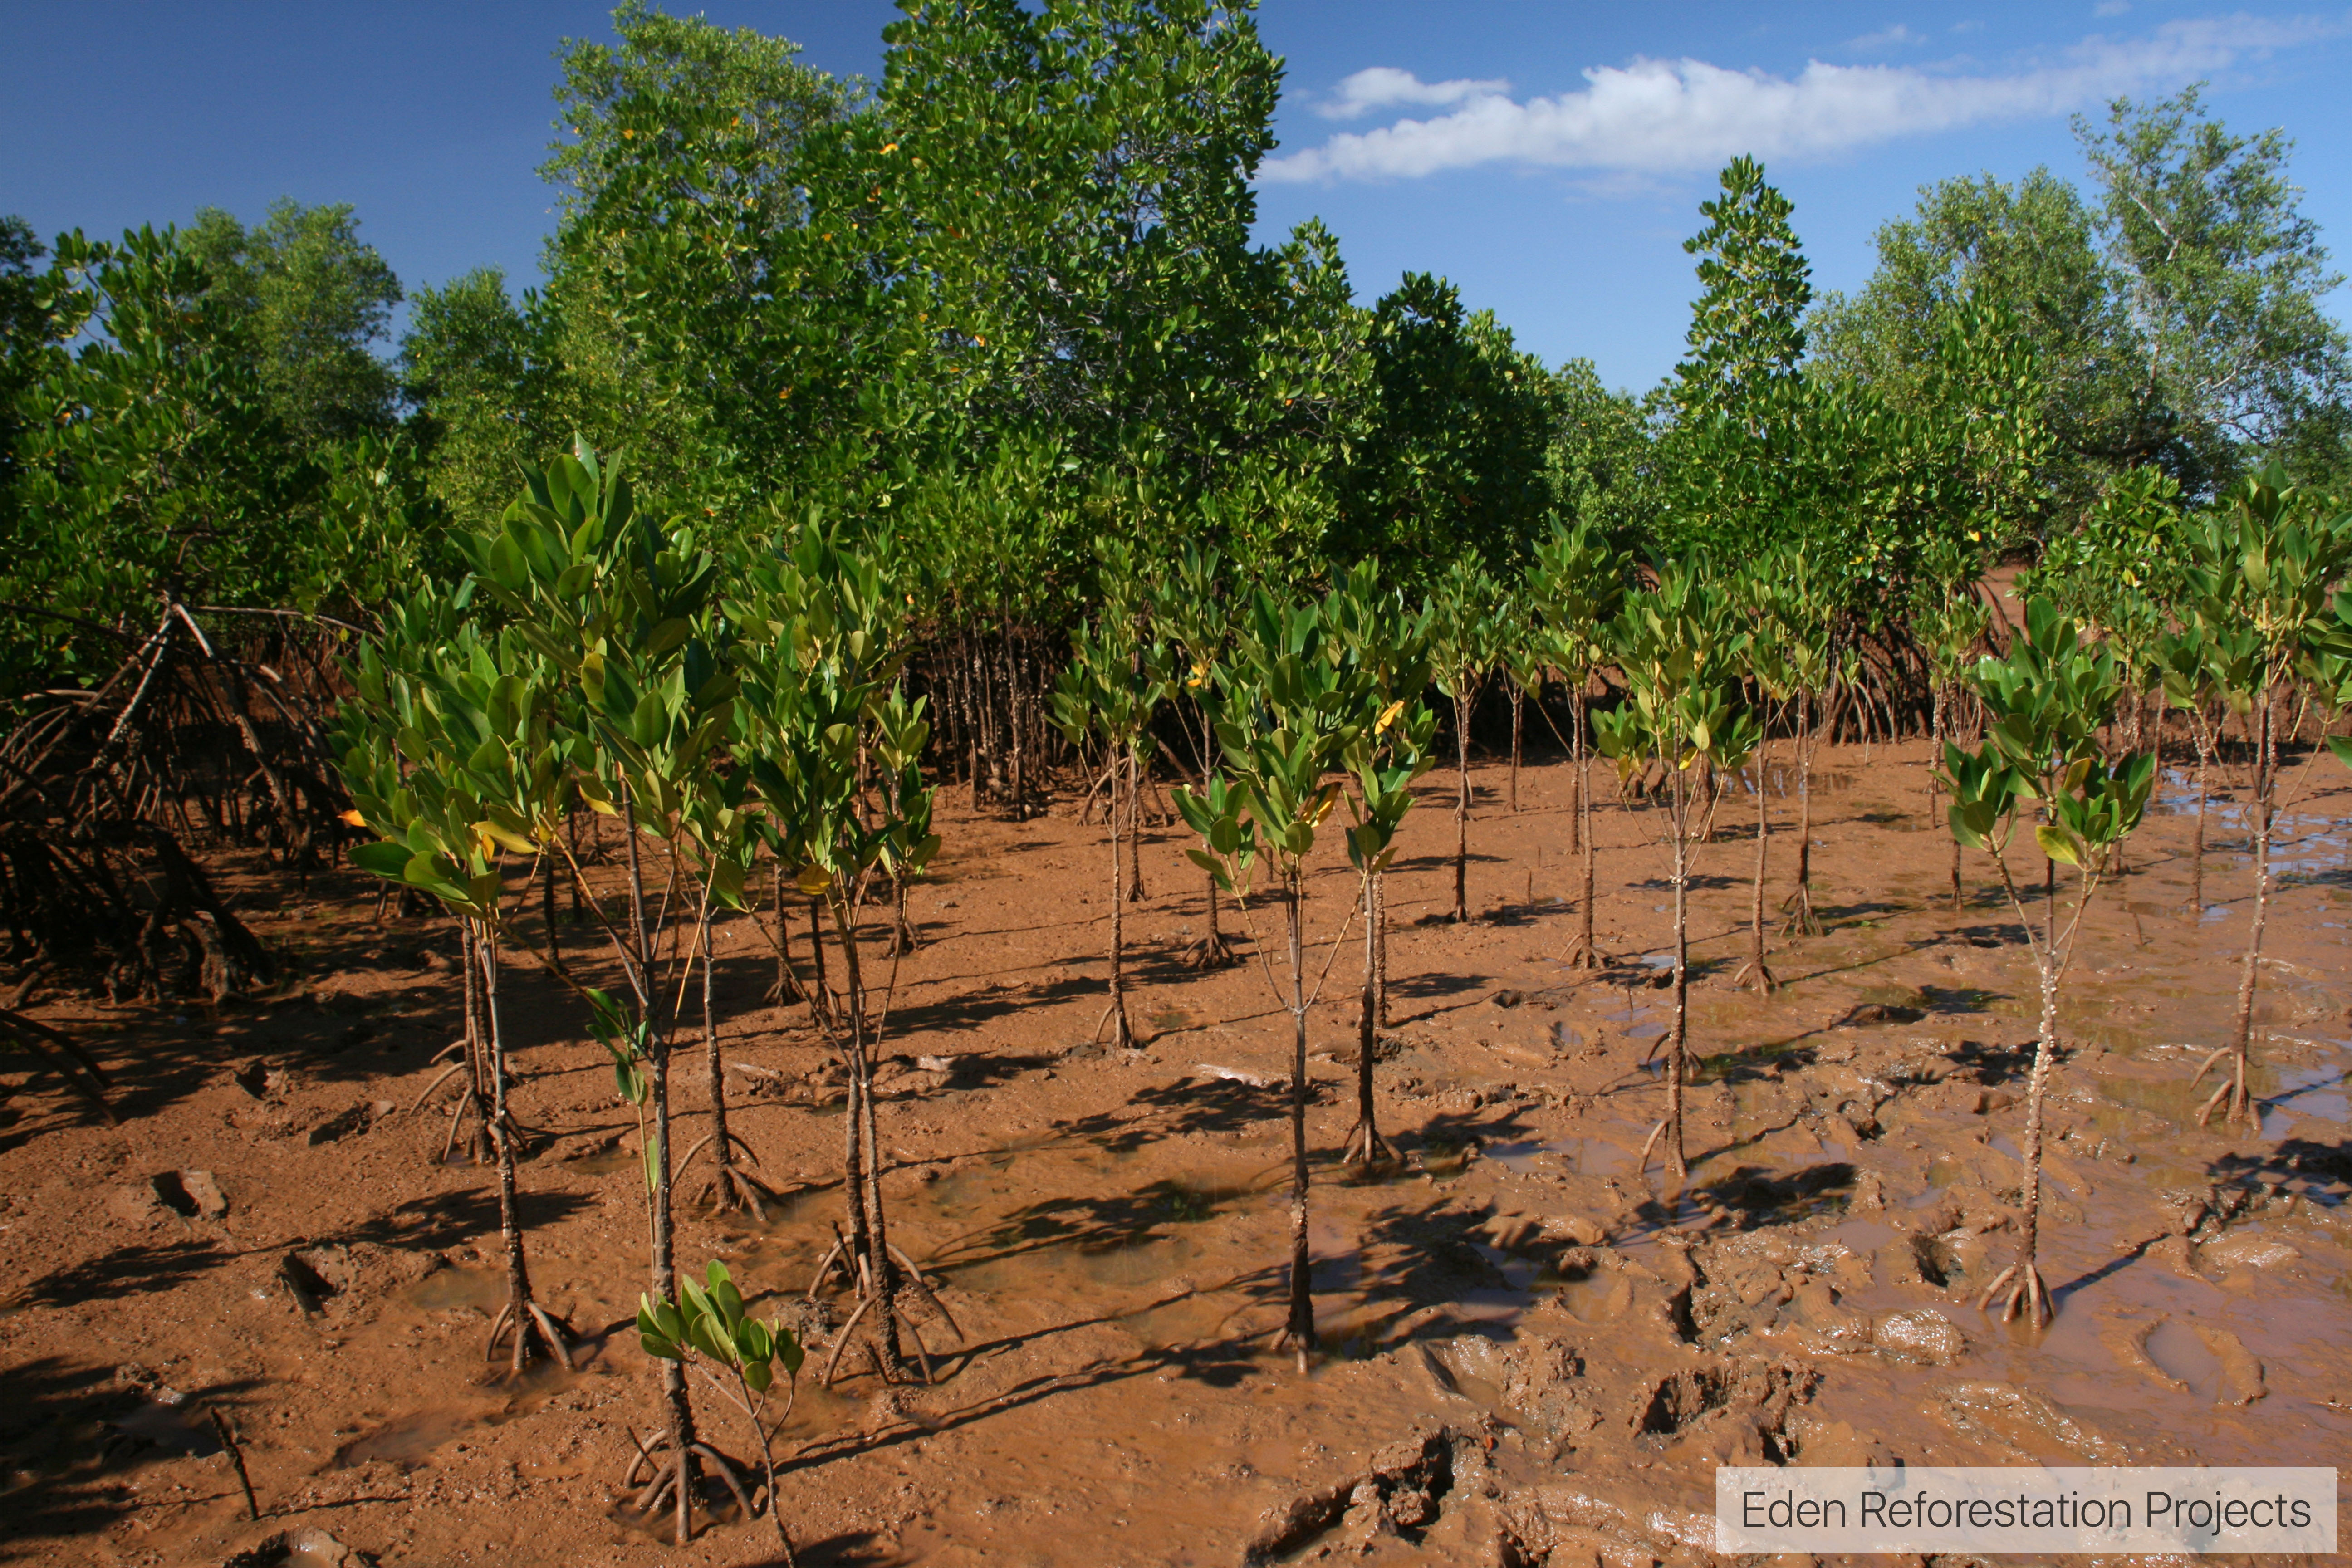 ecosia_eden-reforestation-projects-madagascar